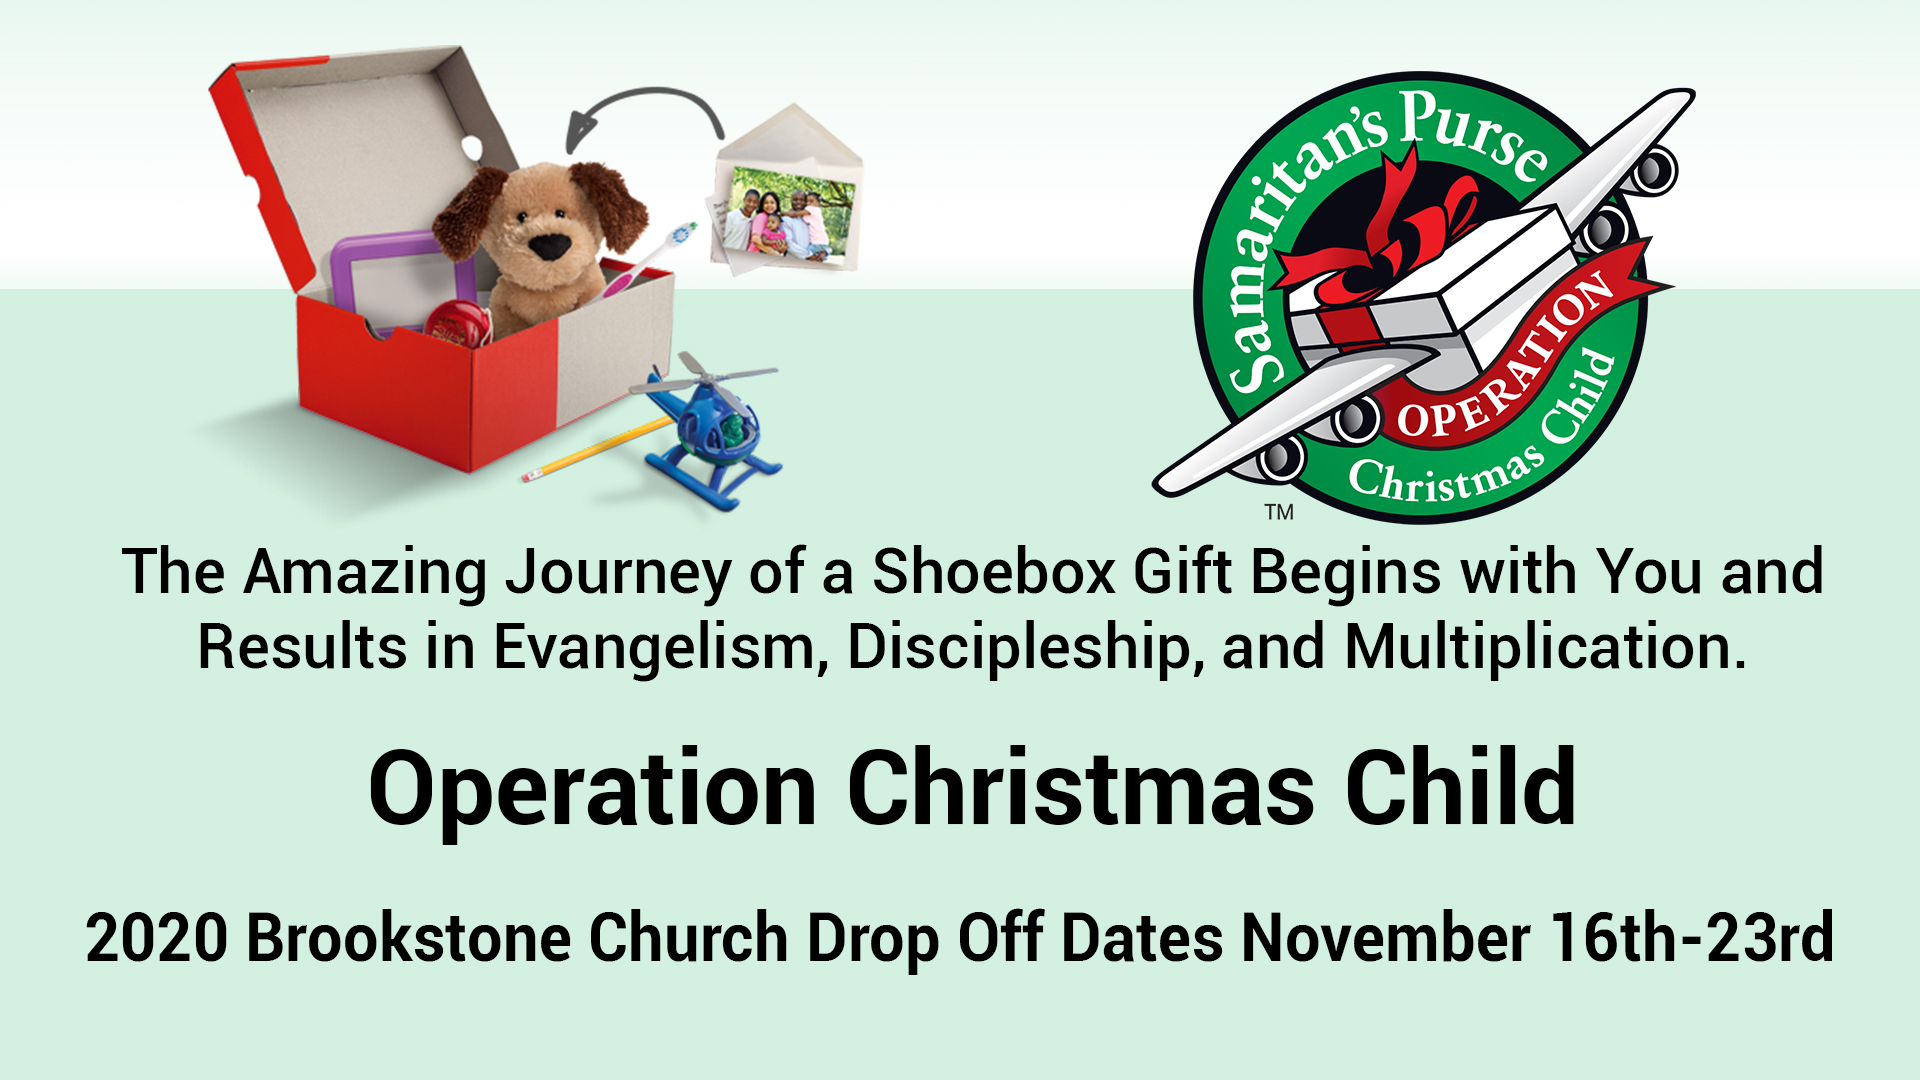 Operation Christmas Child 2020 drop off .jpg